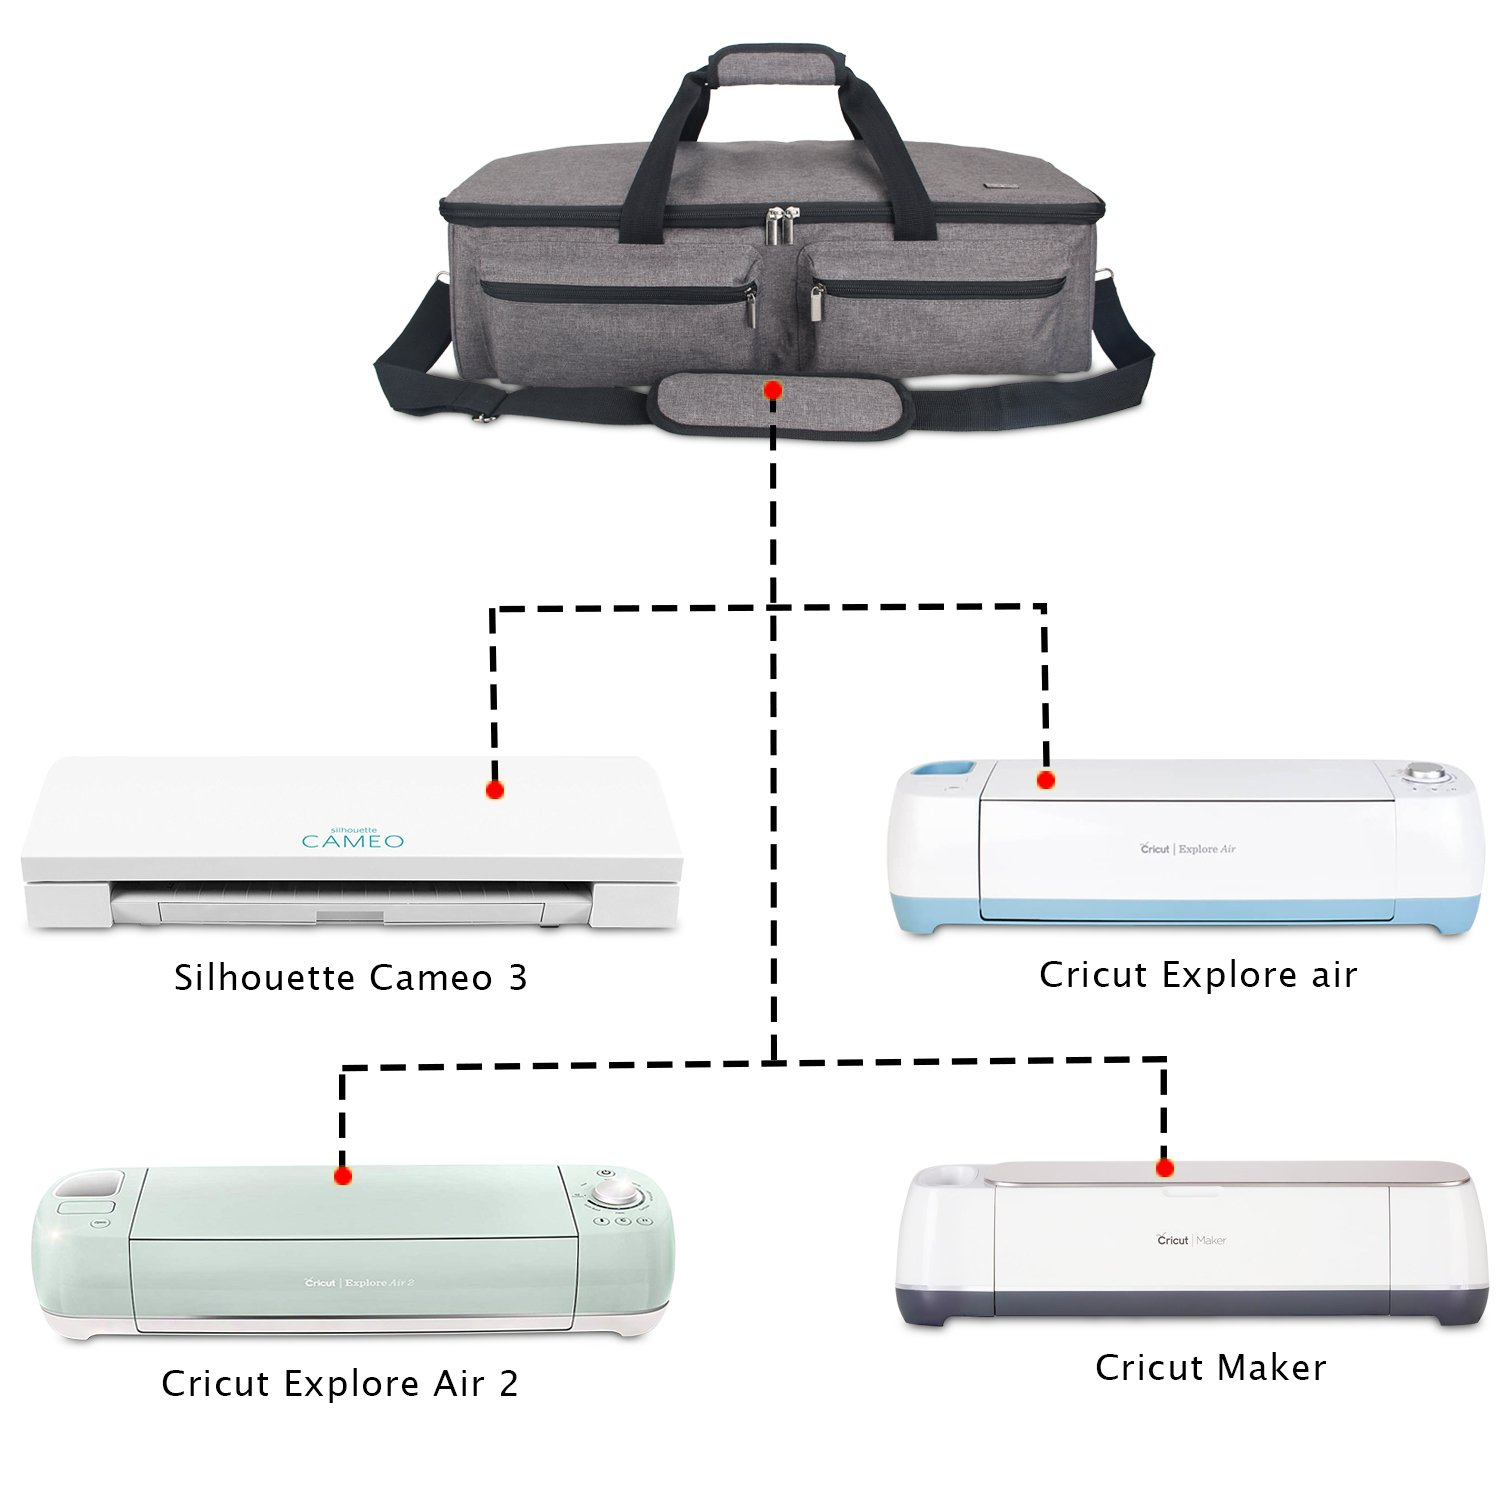 Cricut Maker and Silhouette Cameo 3 Luxja Bag for Silhouette Cameo 3 Patent Pending Compatible with Cricut Explore Air Carrying Case for Cutting Machine and Accessories Air2 Gray